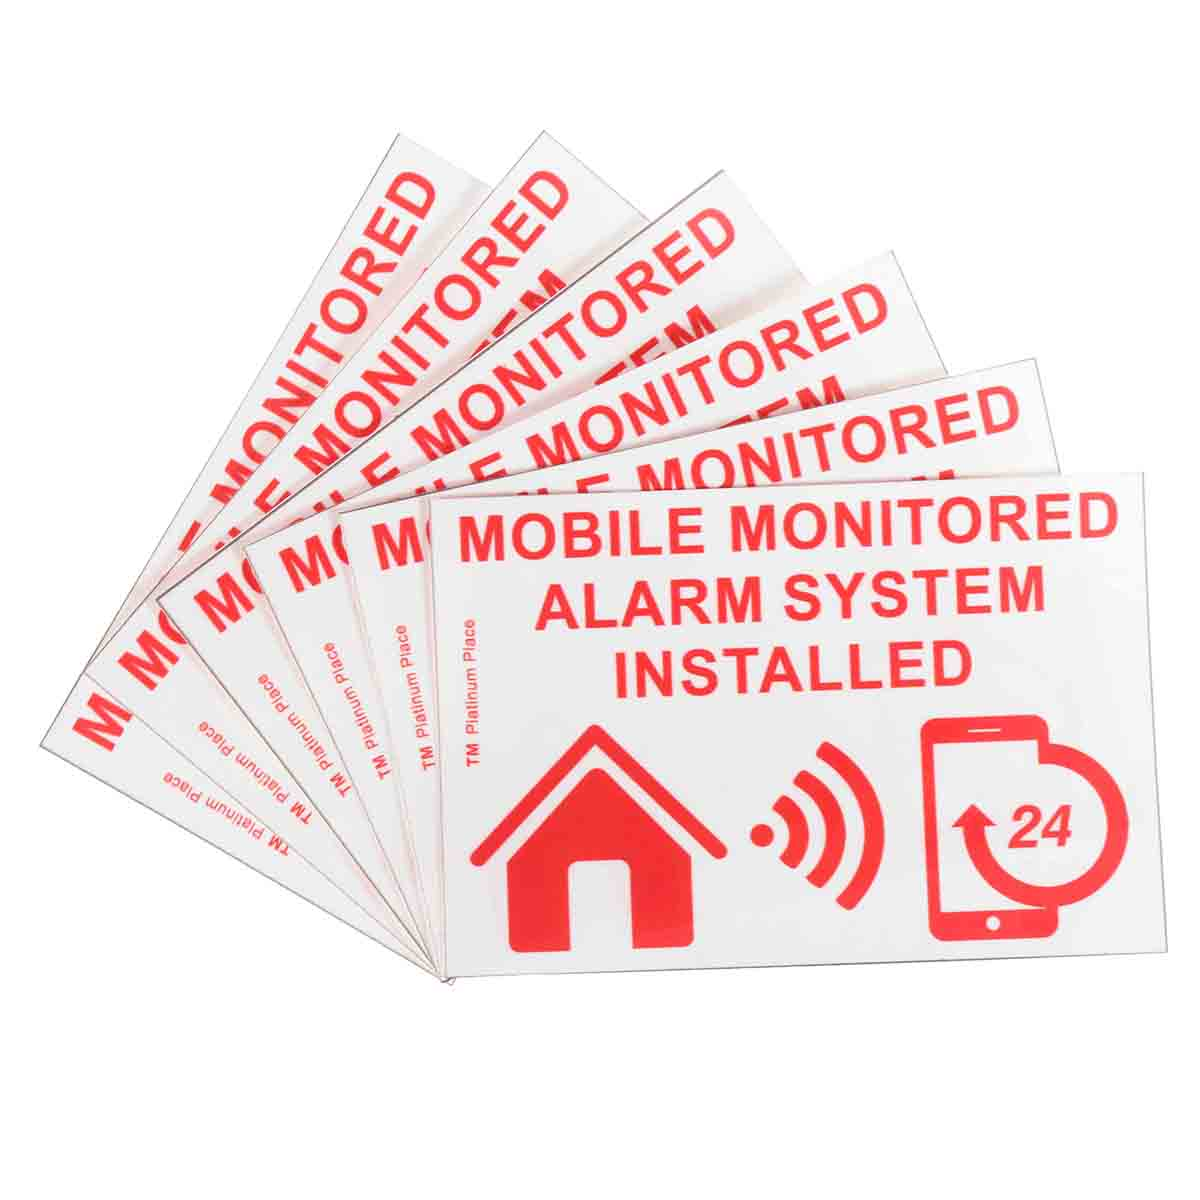 Safurance 6xMobile Monitored Alarm System Installed Warning Sign External Sticker 130x87mm Home Security Safety цена и фото